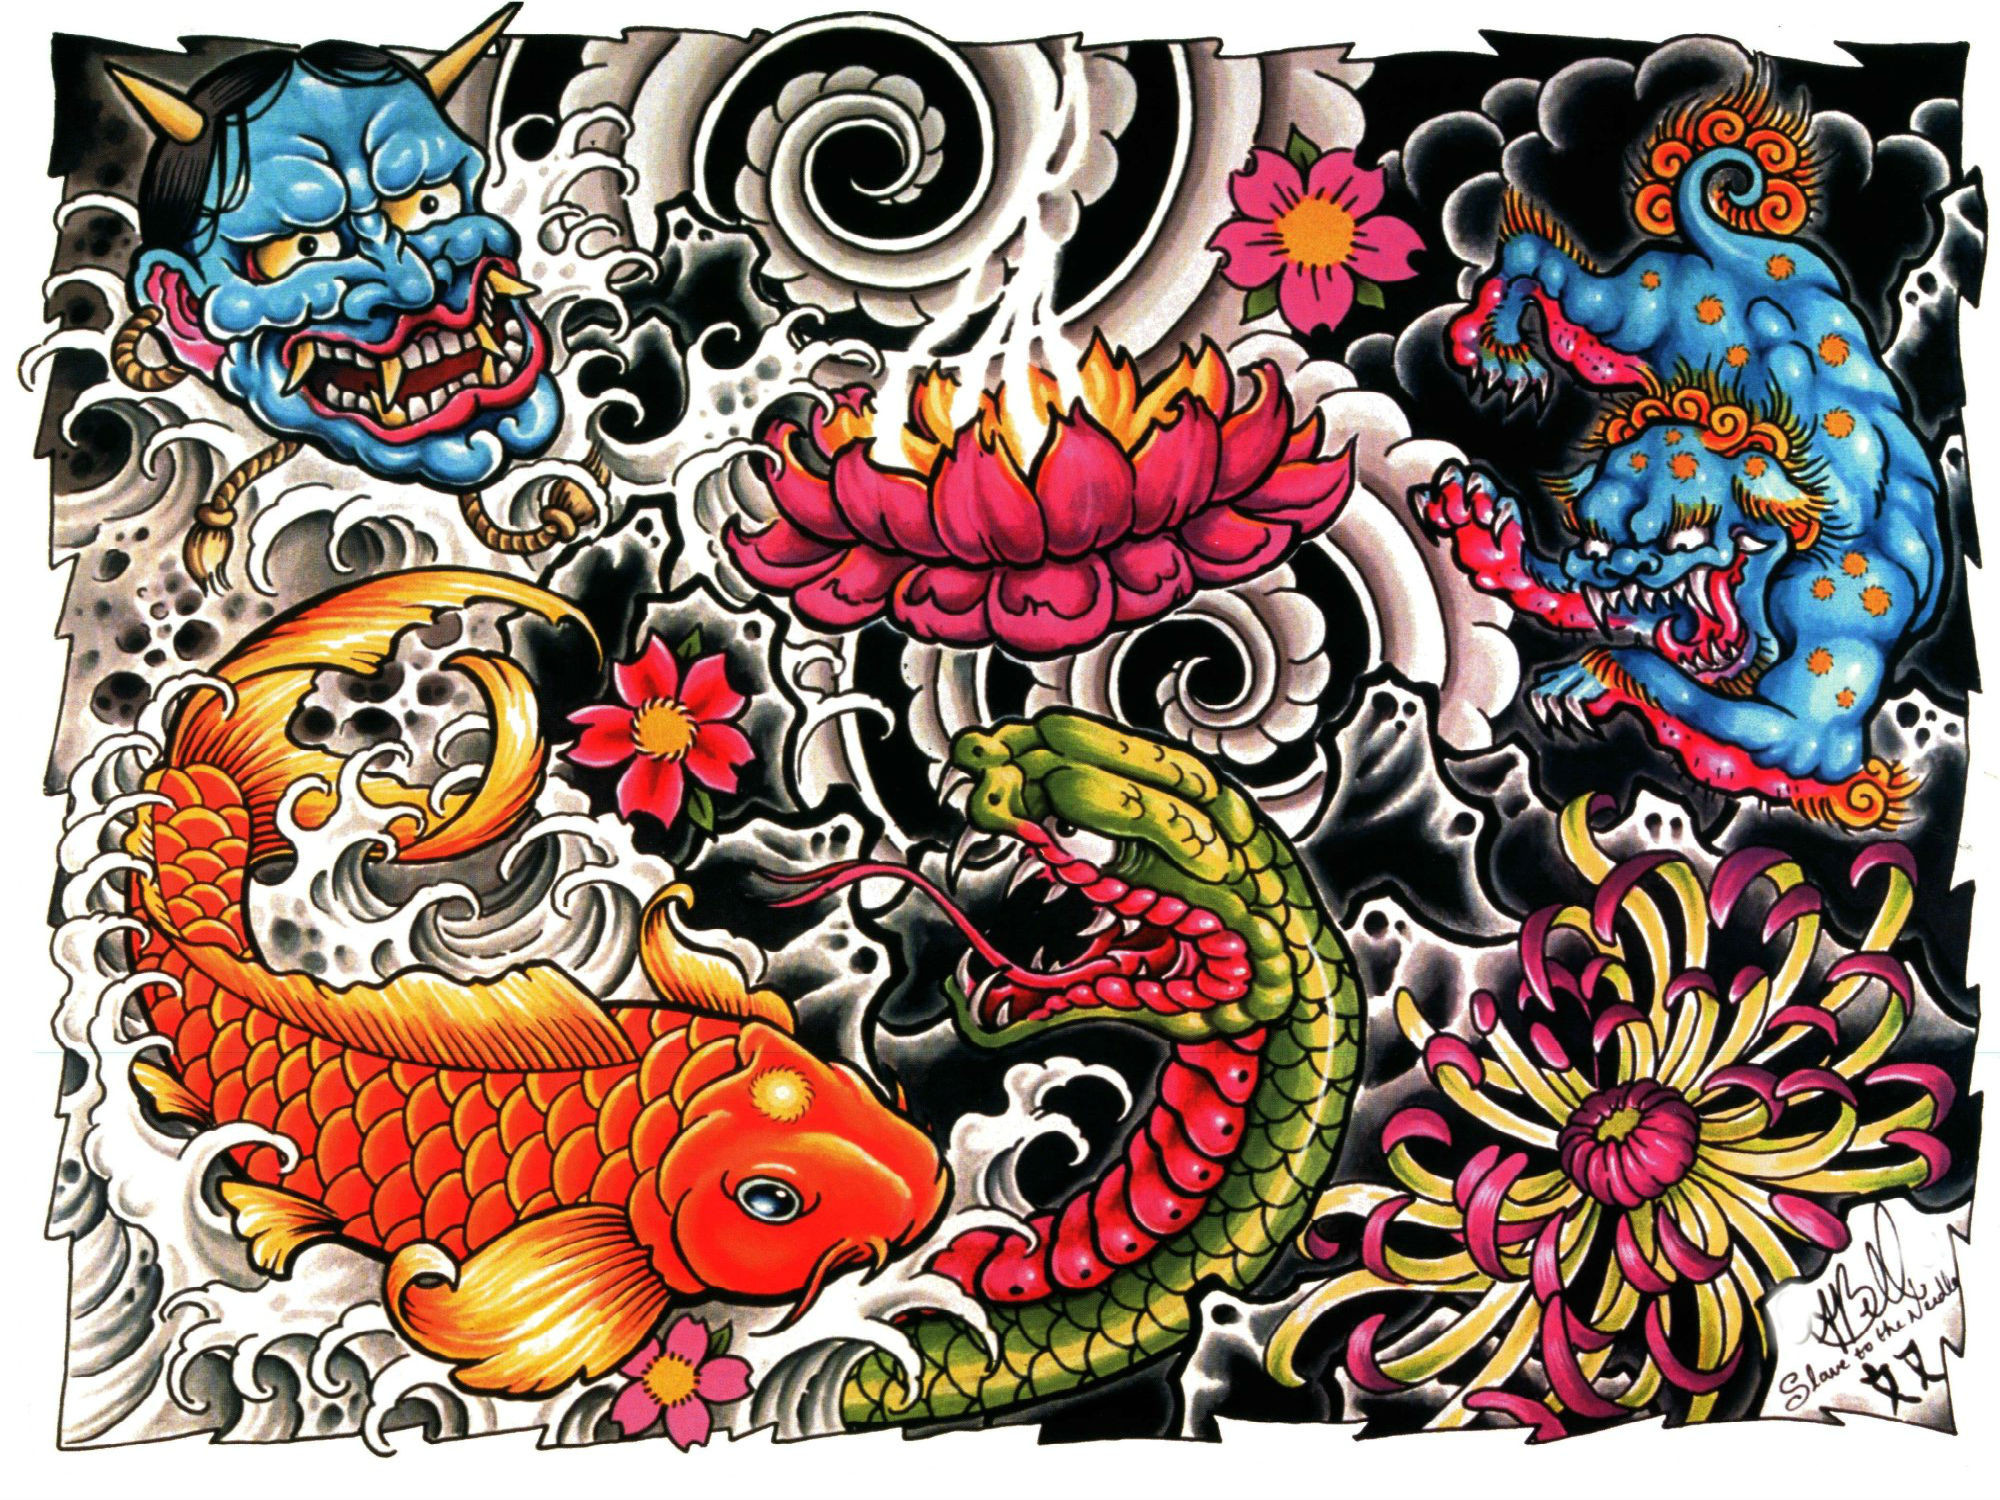 Res: 2000x1500, Artistic - Tattoo Wallpaper